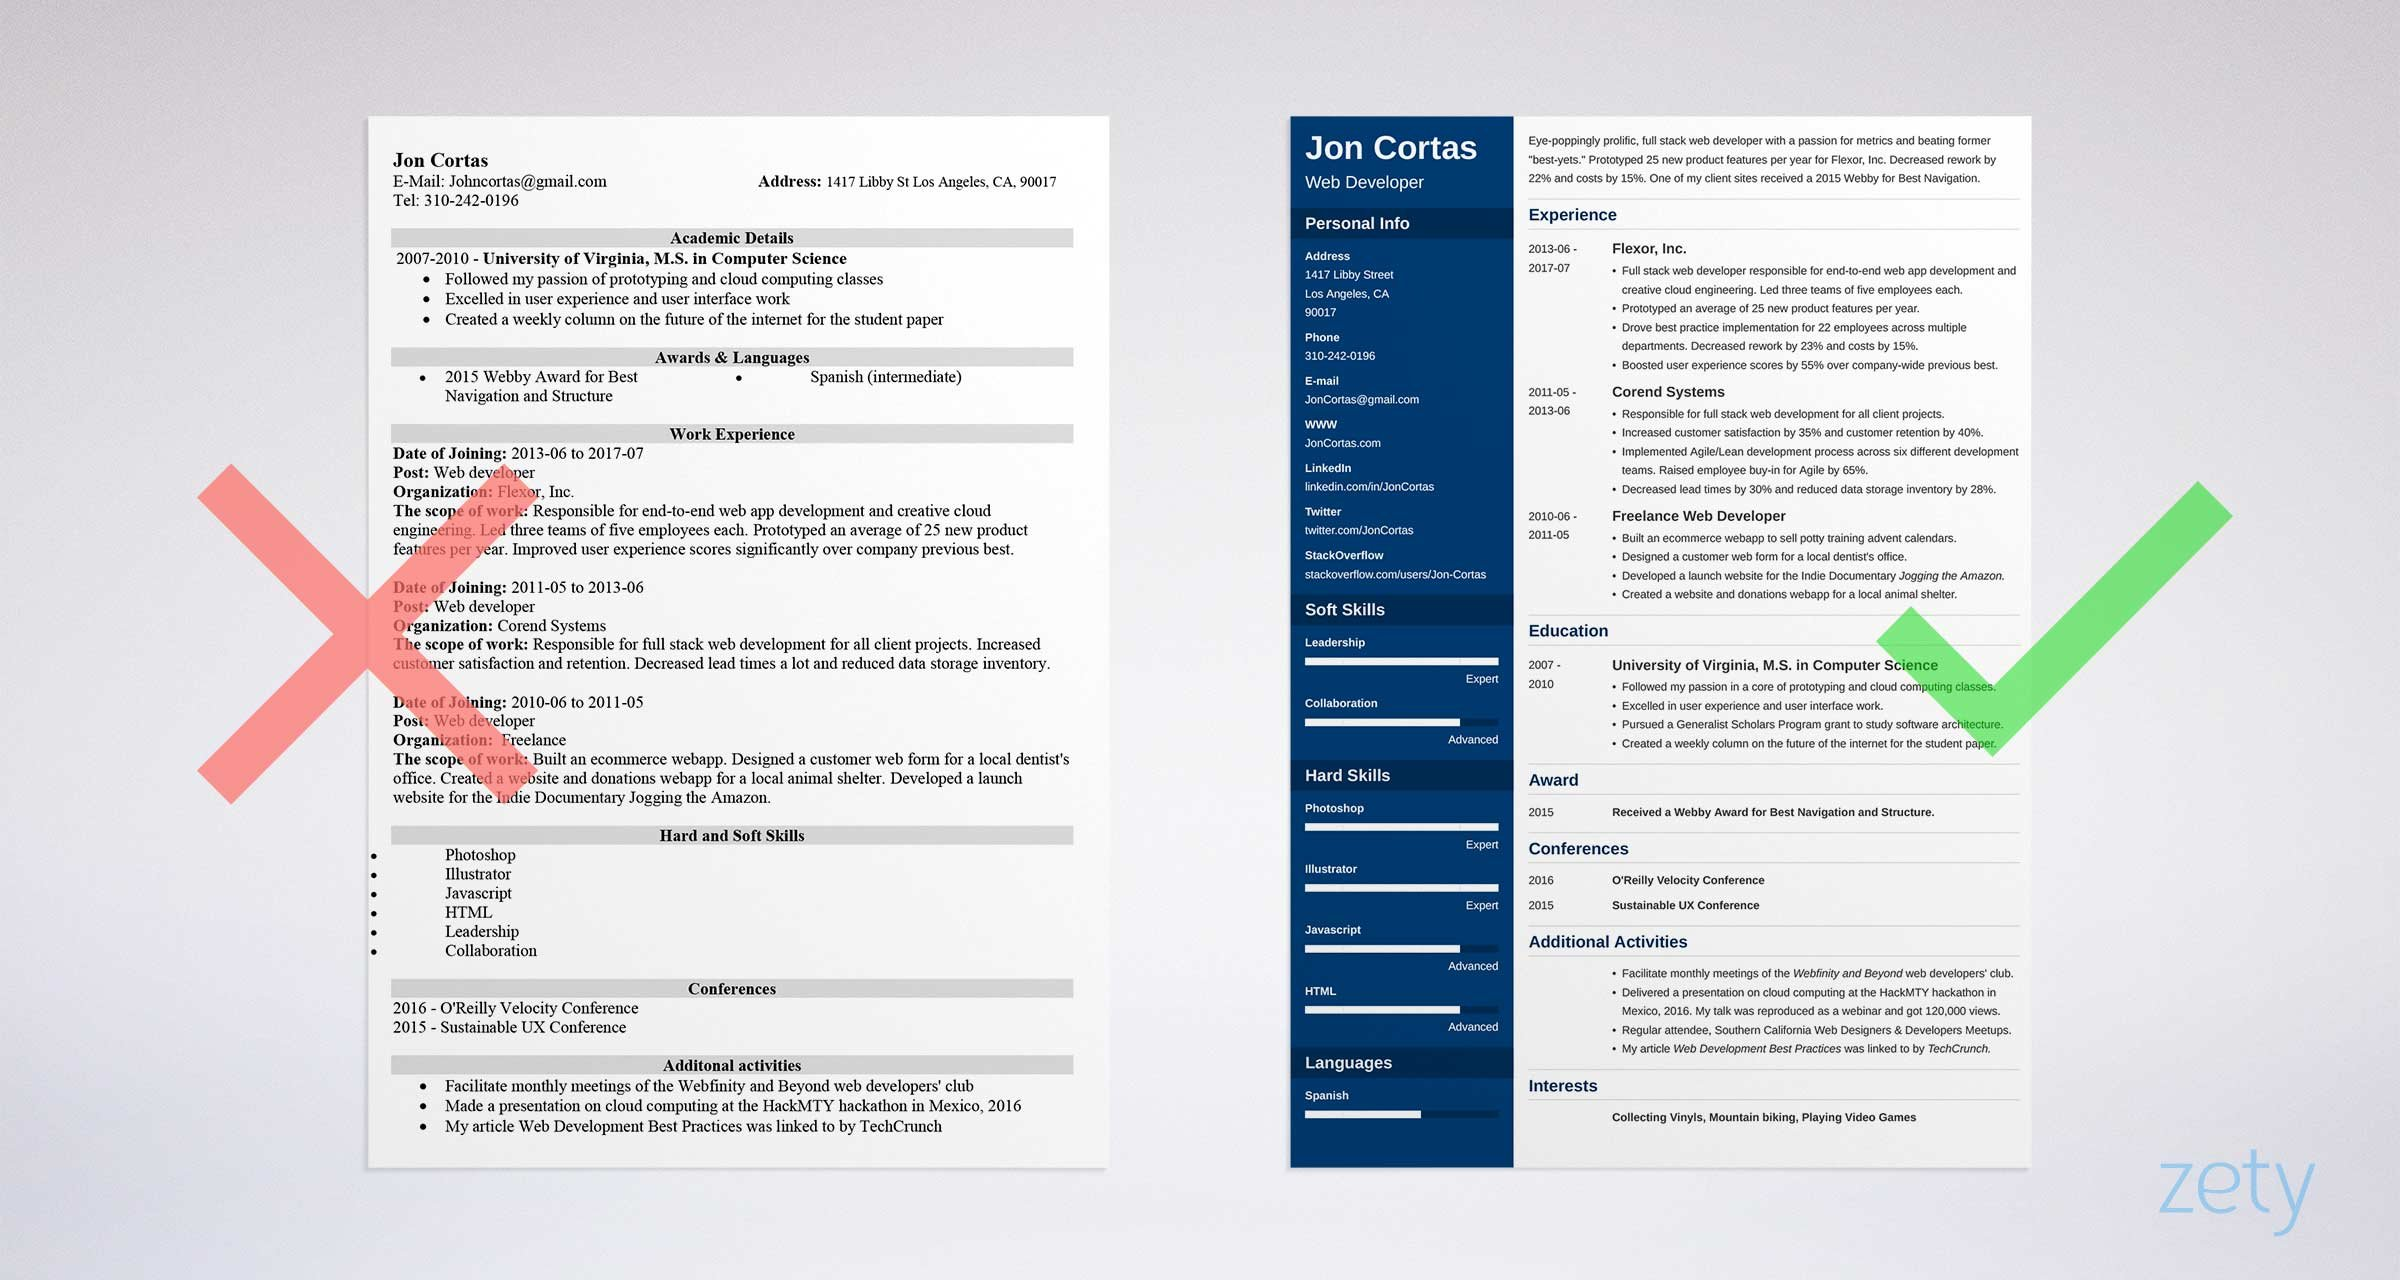 Professional resume templates 15 to download and use right away bad and good resume templates comparison maxwellsz